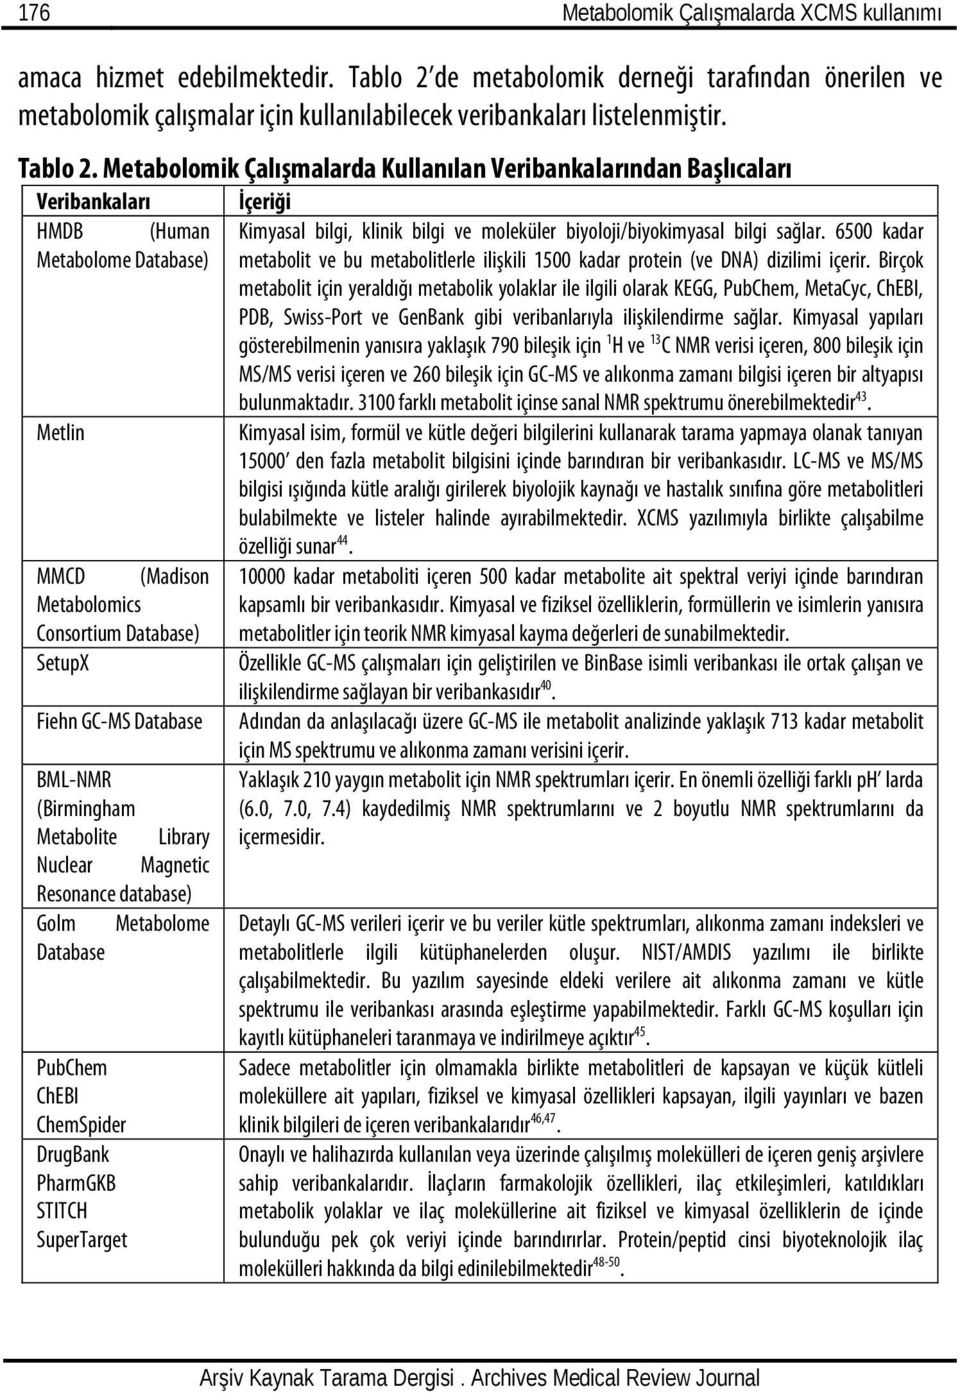 Metabolomik Çalışmalarda Kullanılan Veribankalarından Başlıcaları Veribankaları HMDB (Human Metabolome Database) Metlin MMCD (Madison Metabolomics Consortium Database) SetupX Fiehn GC-MS Database